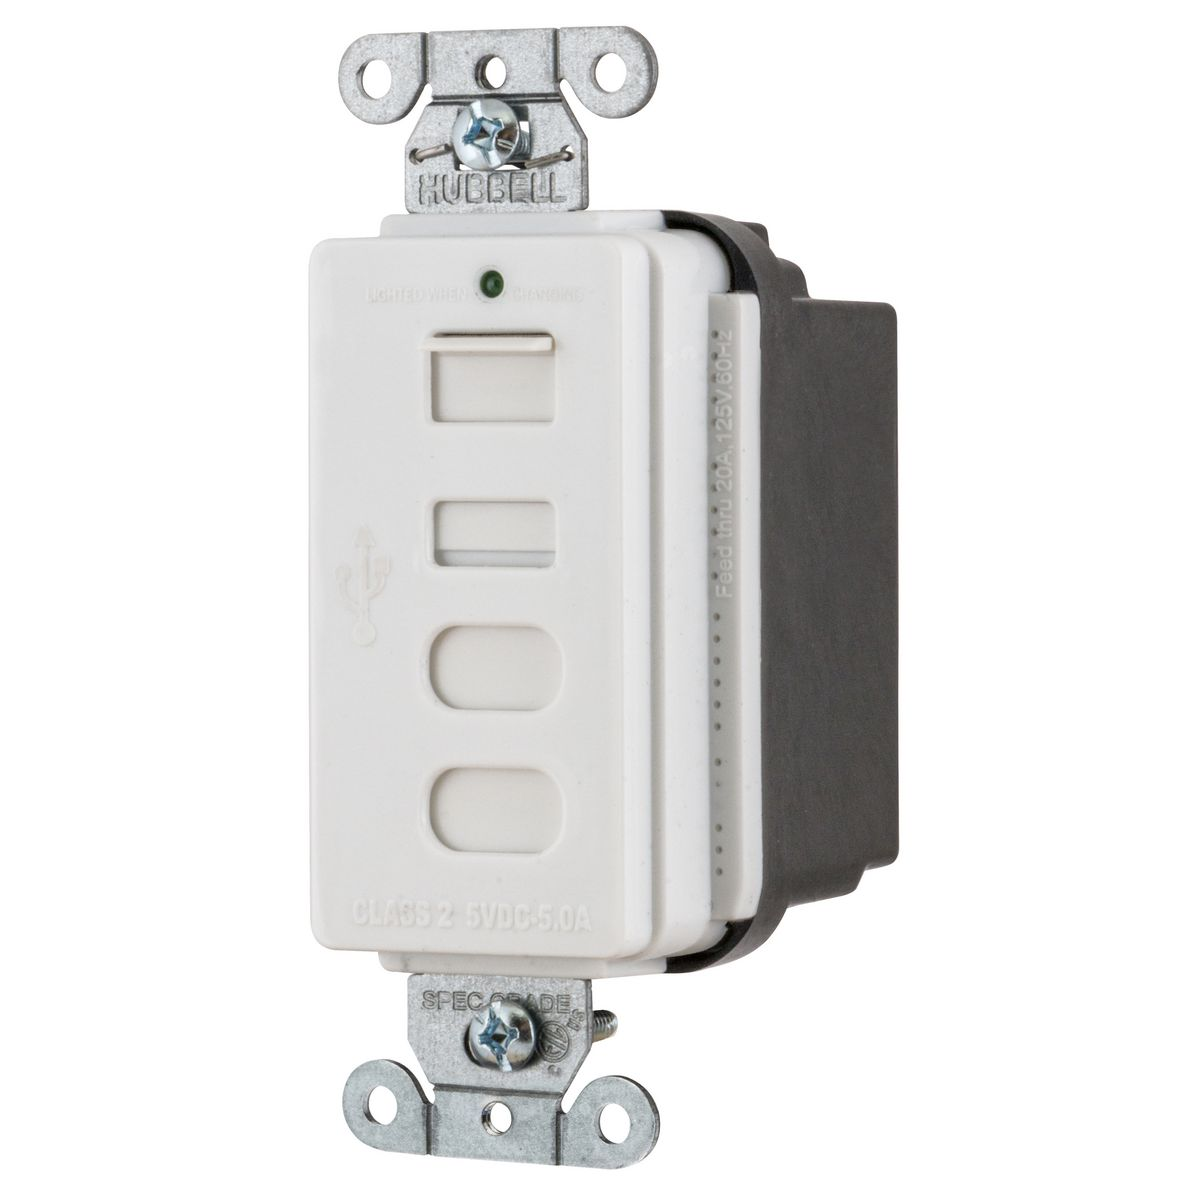 Hubbell USB4ACW Receptacle and USB Charger